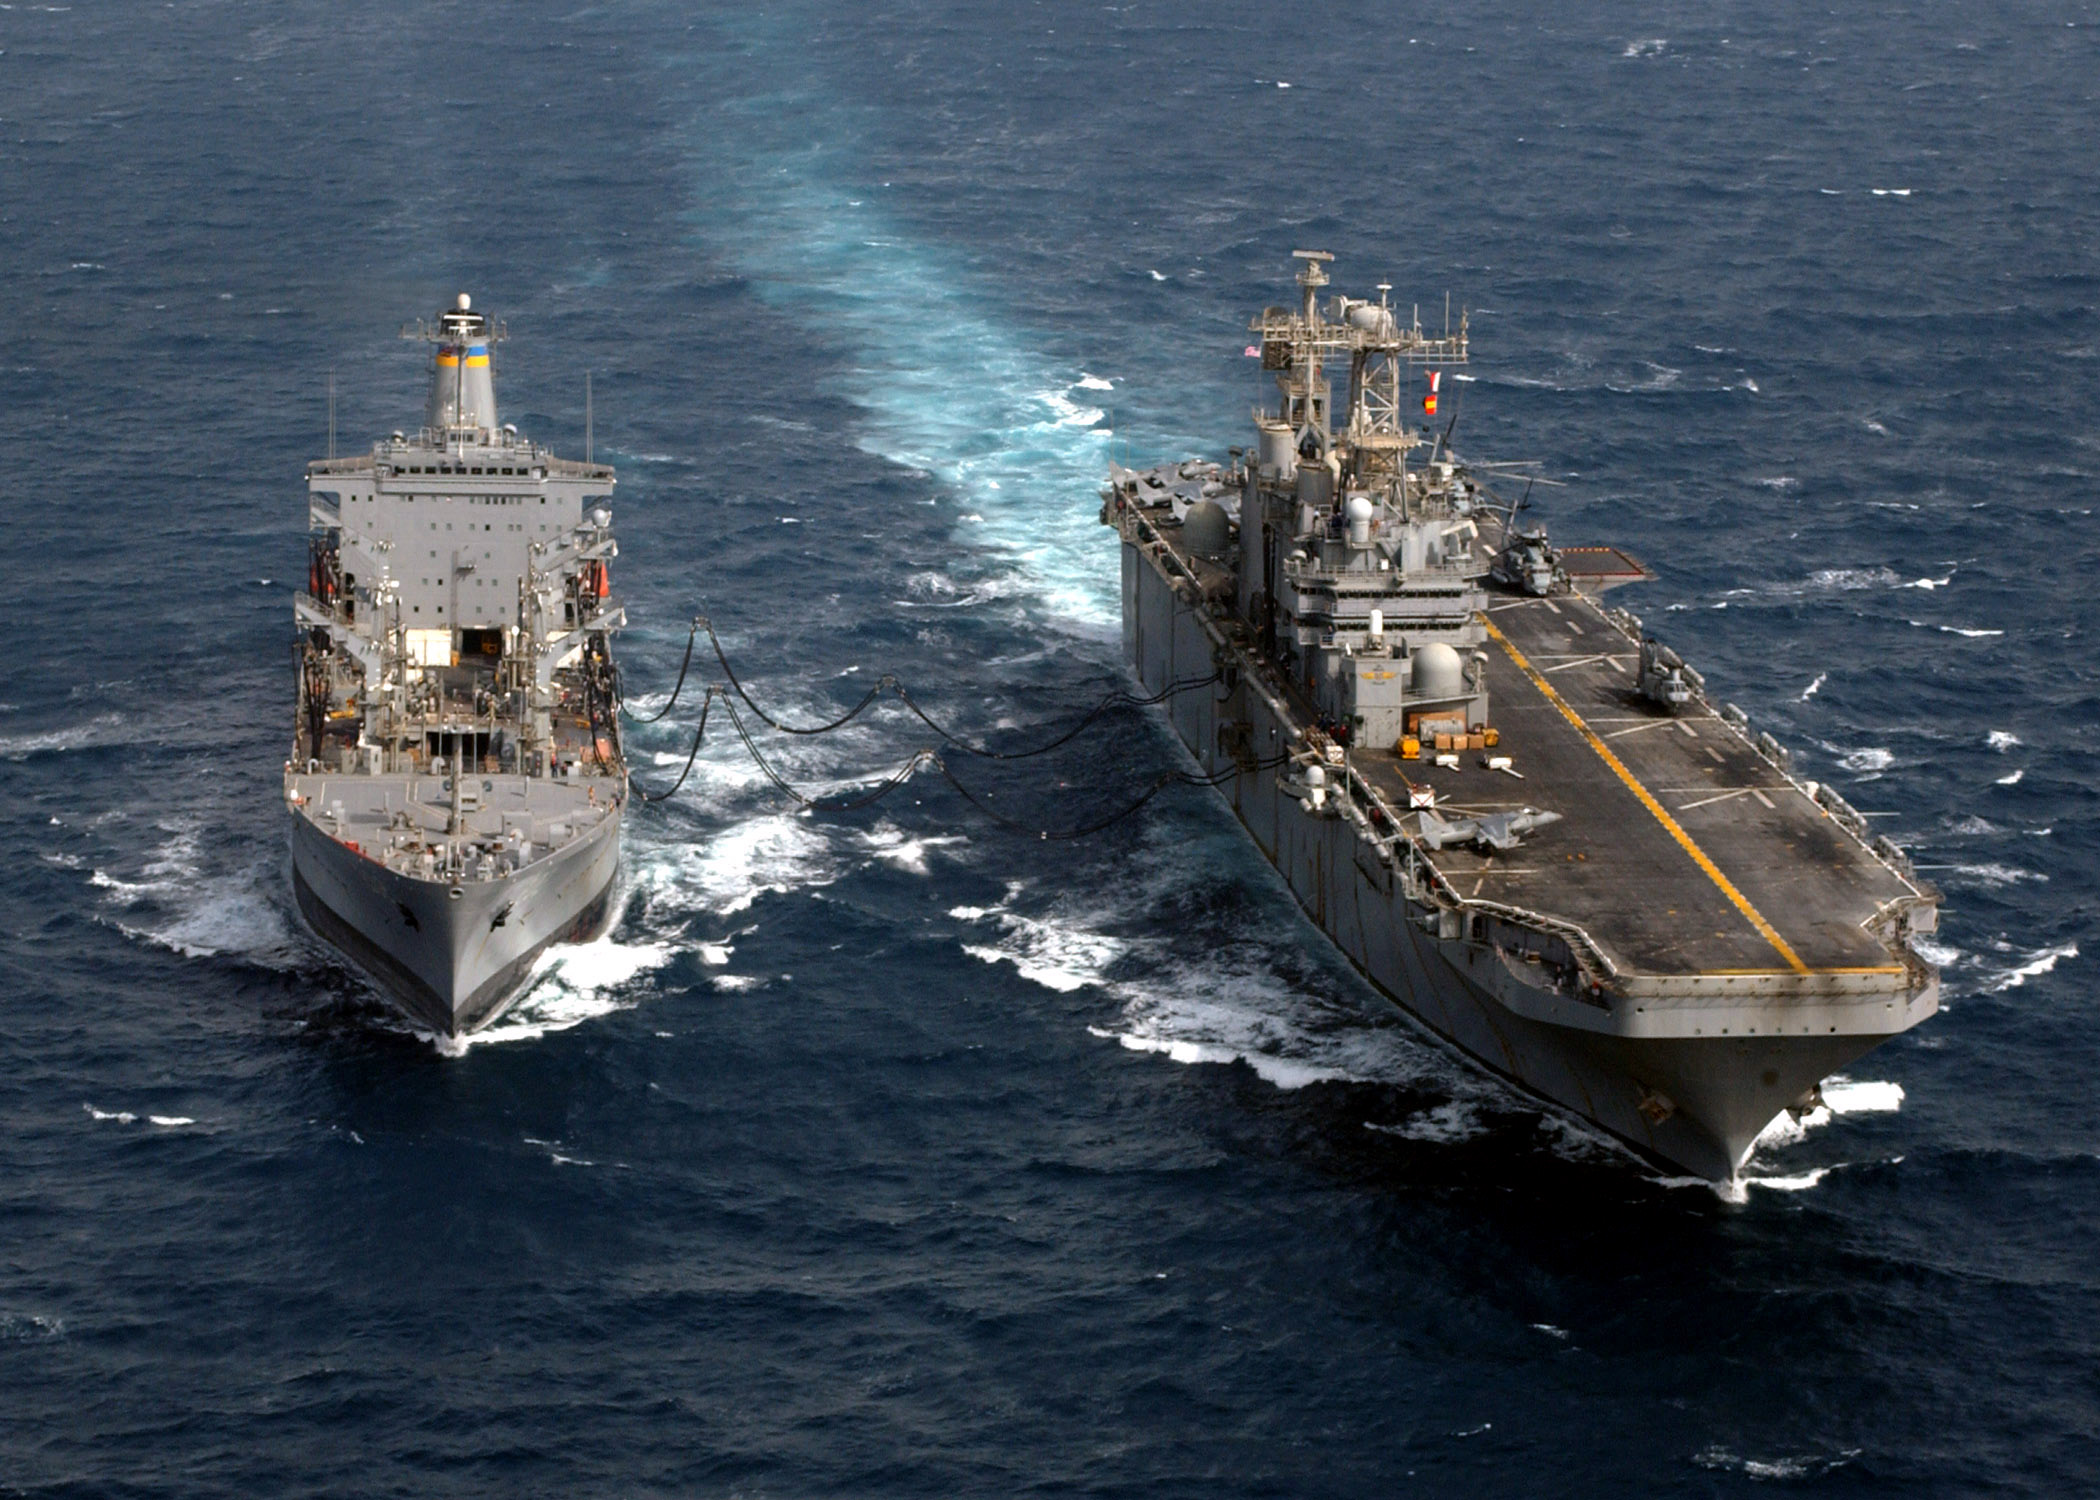 Uss Tarawa (lha 1) Receives Fuel During An Underway Replenishment ...